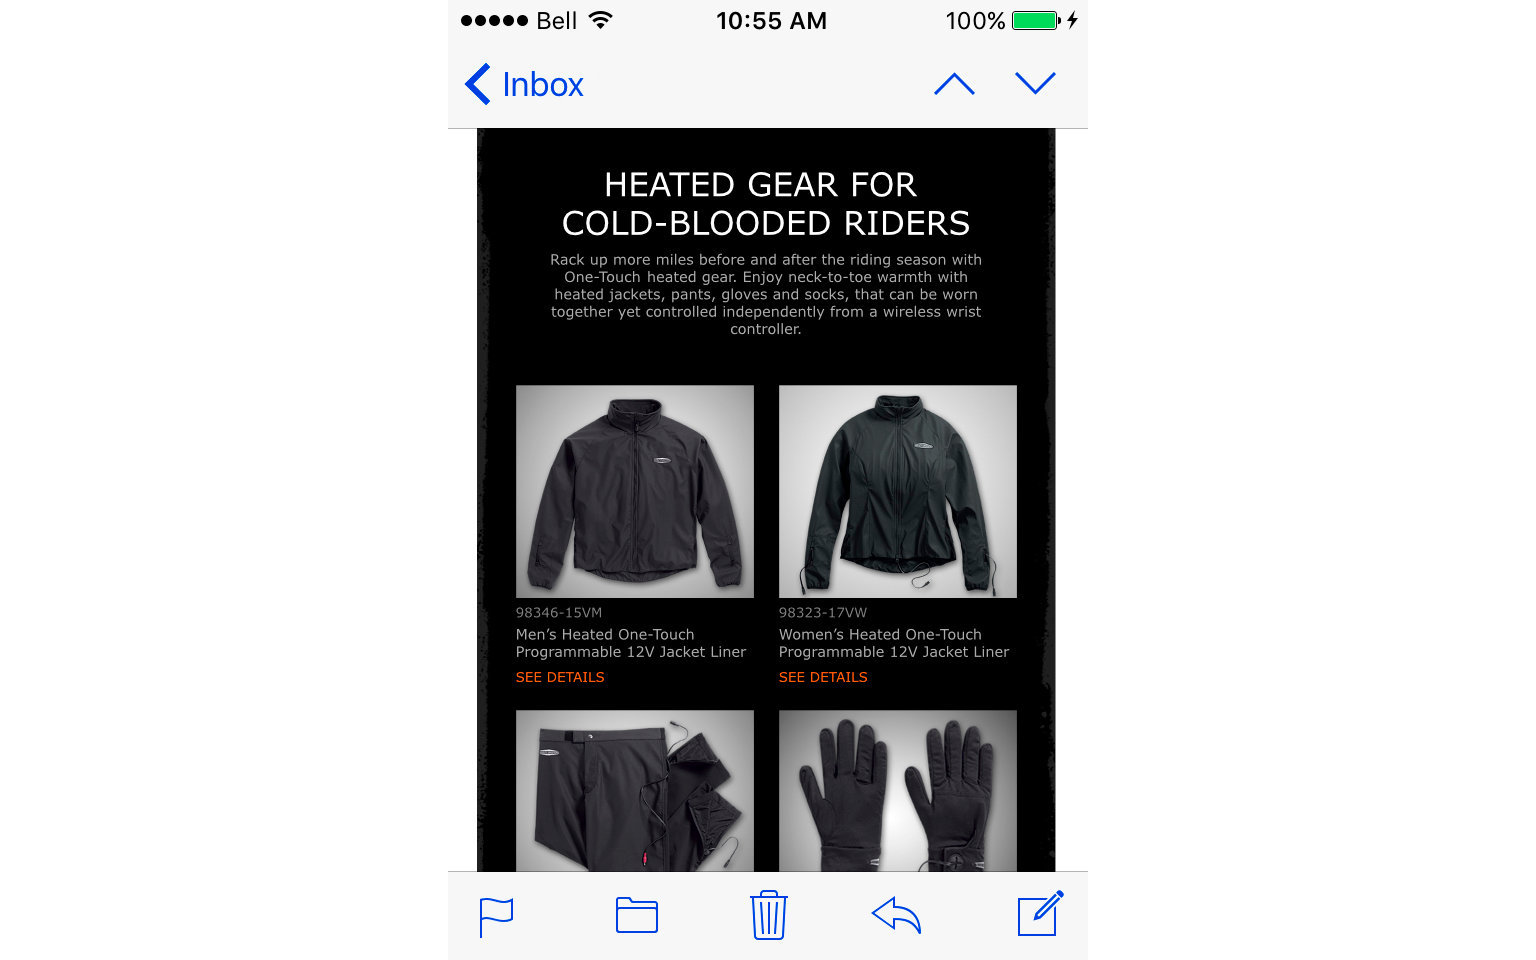 HARLEY-DAVIDSON ACCESSORIES EMAIL  3/10